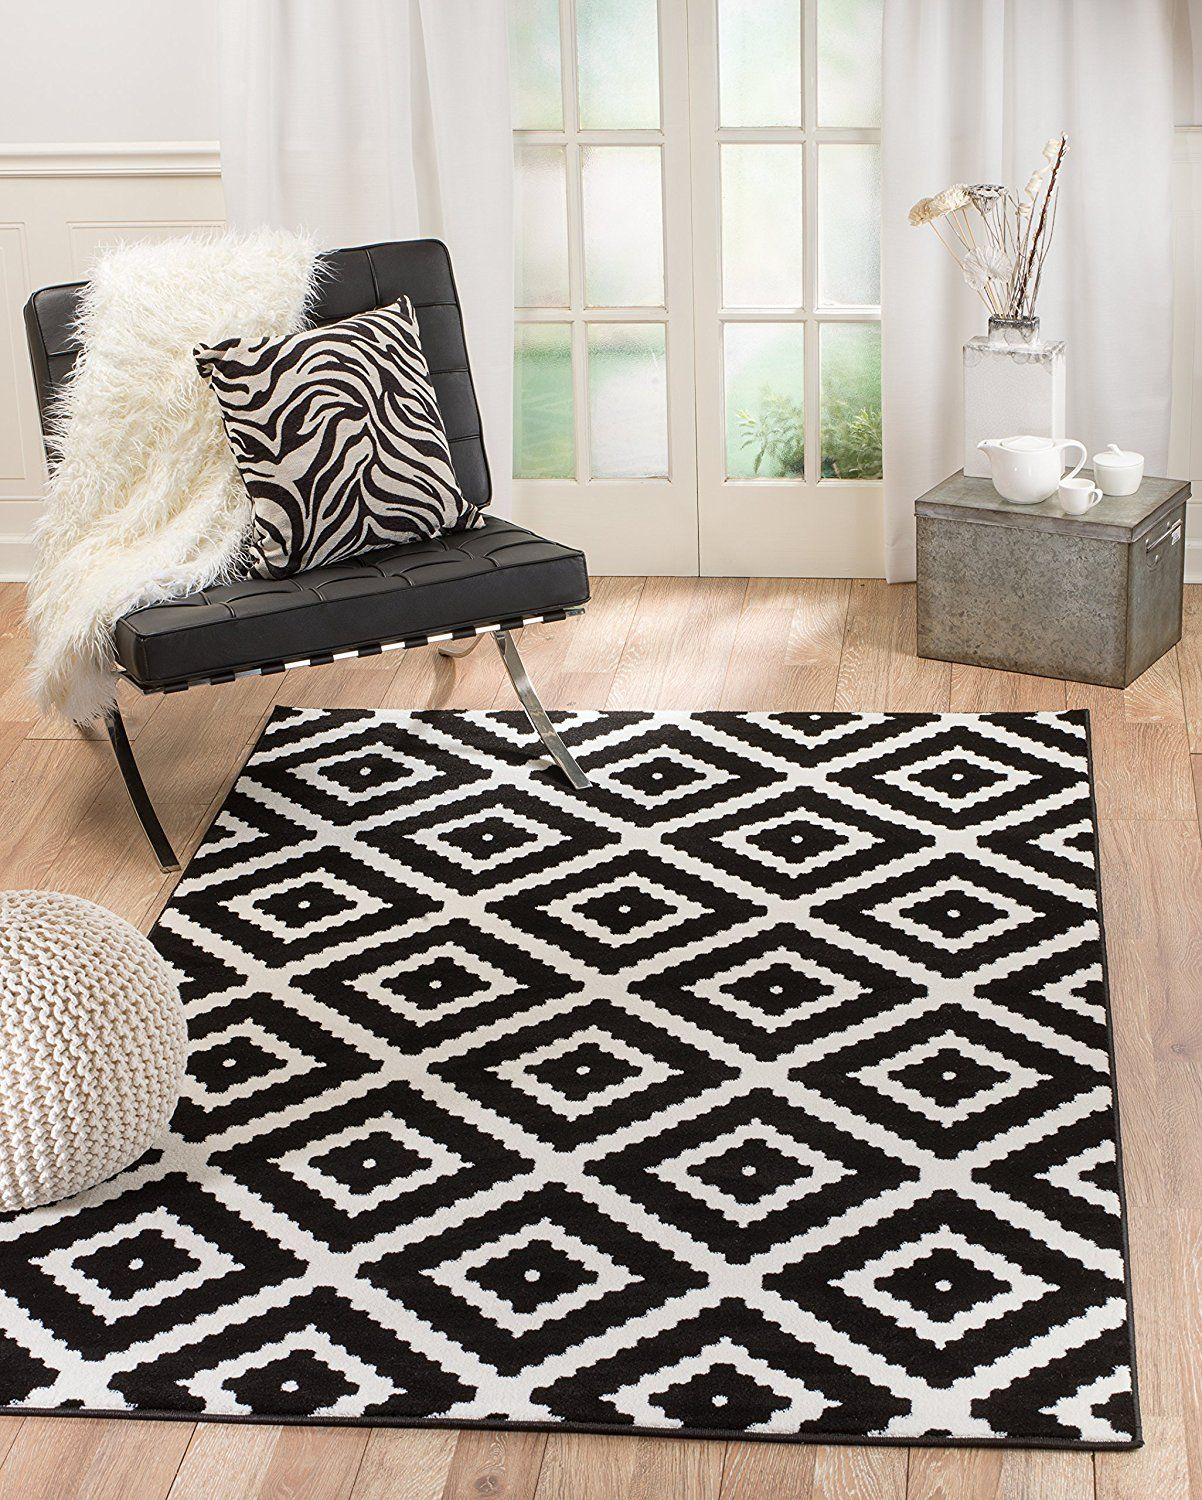 Afrocentric African Theme Black And White Rug Modern Area Rugs White Rug Black White Rug